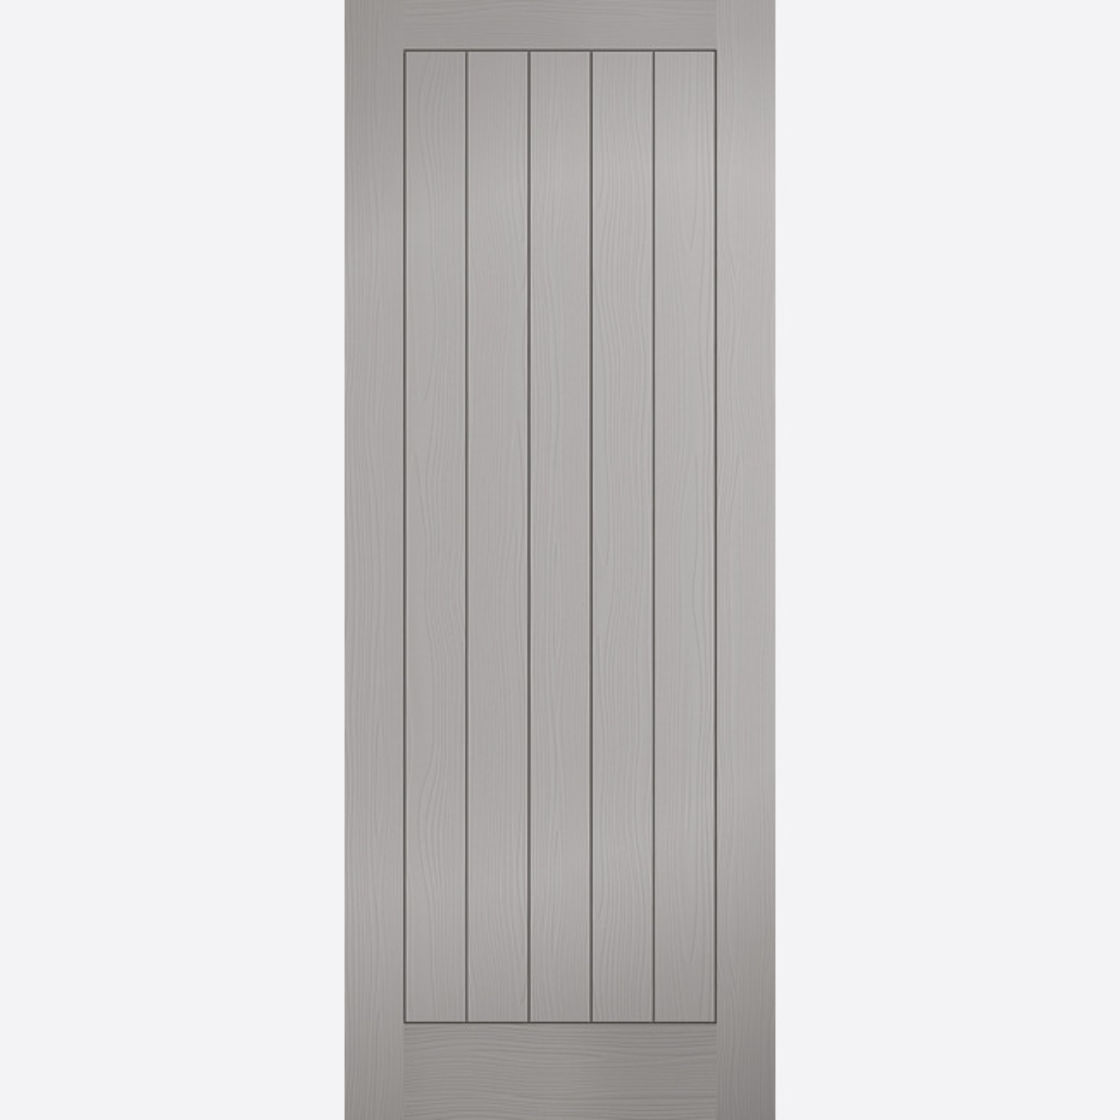 Textured 5P Door: Vertical 5-Panel T&G Effect Pre-Finished Grey 35mm Internal Door - LPD Essentials Doors